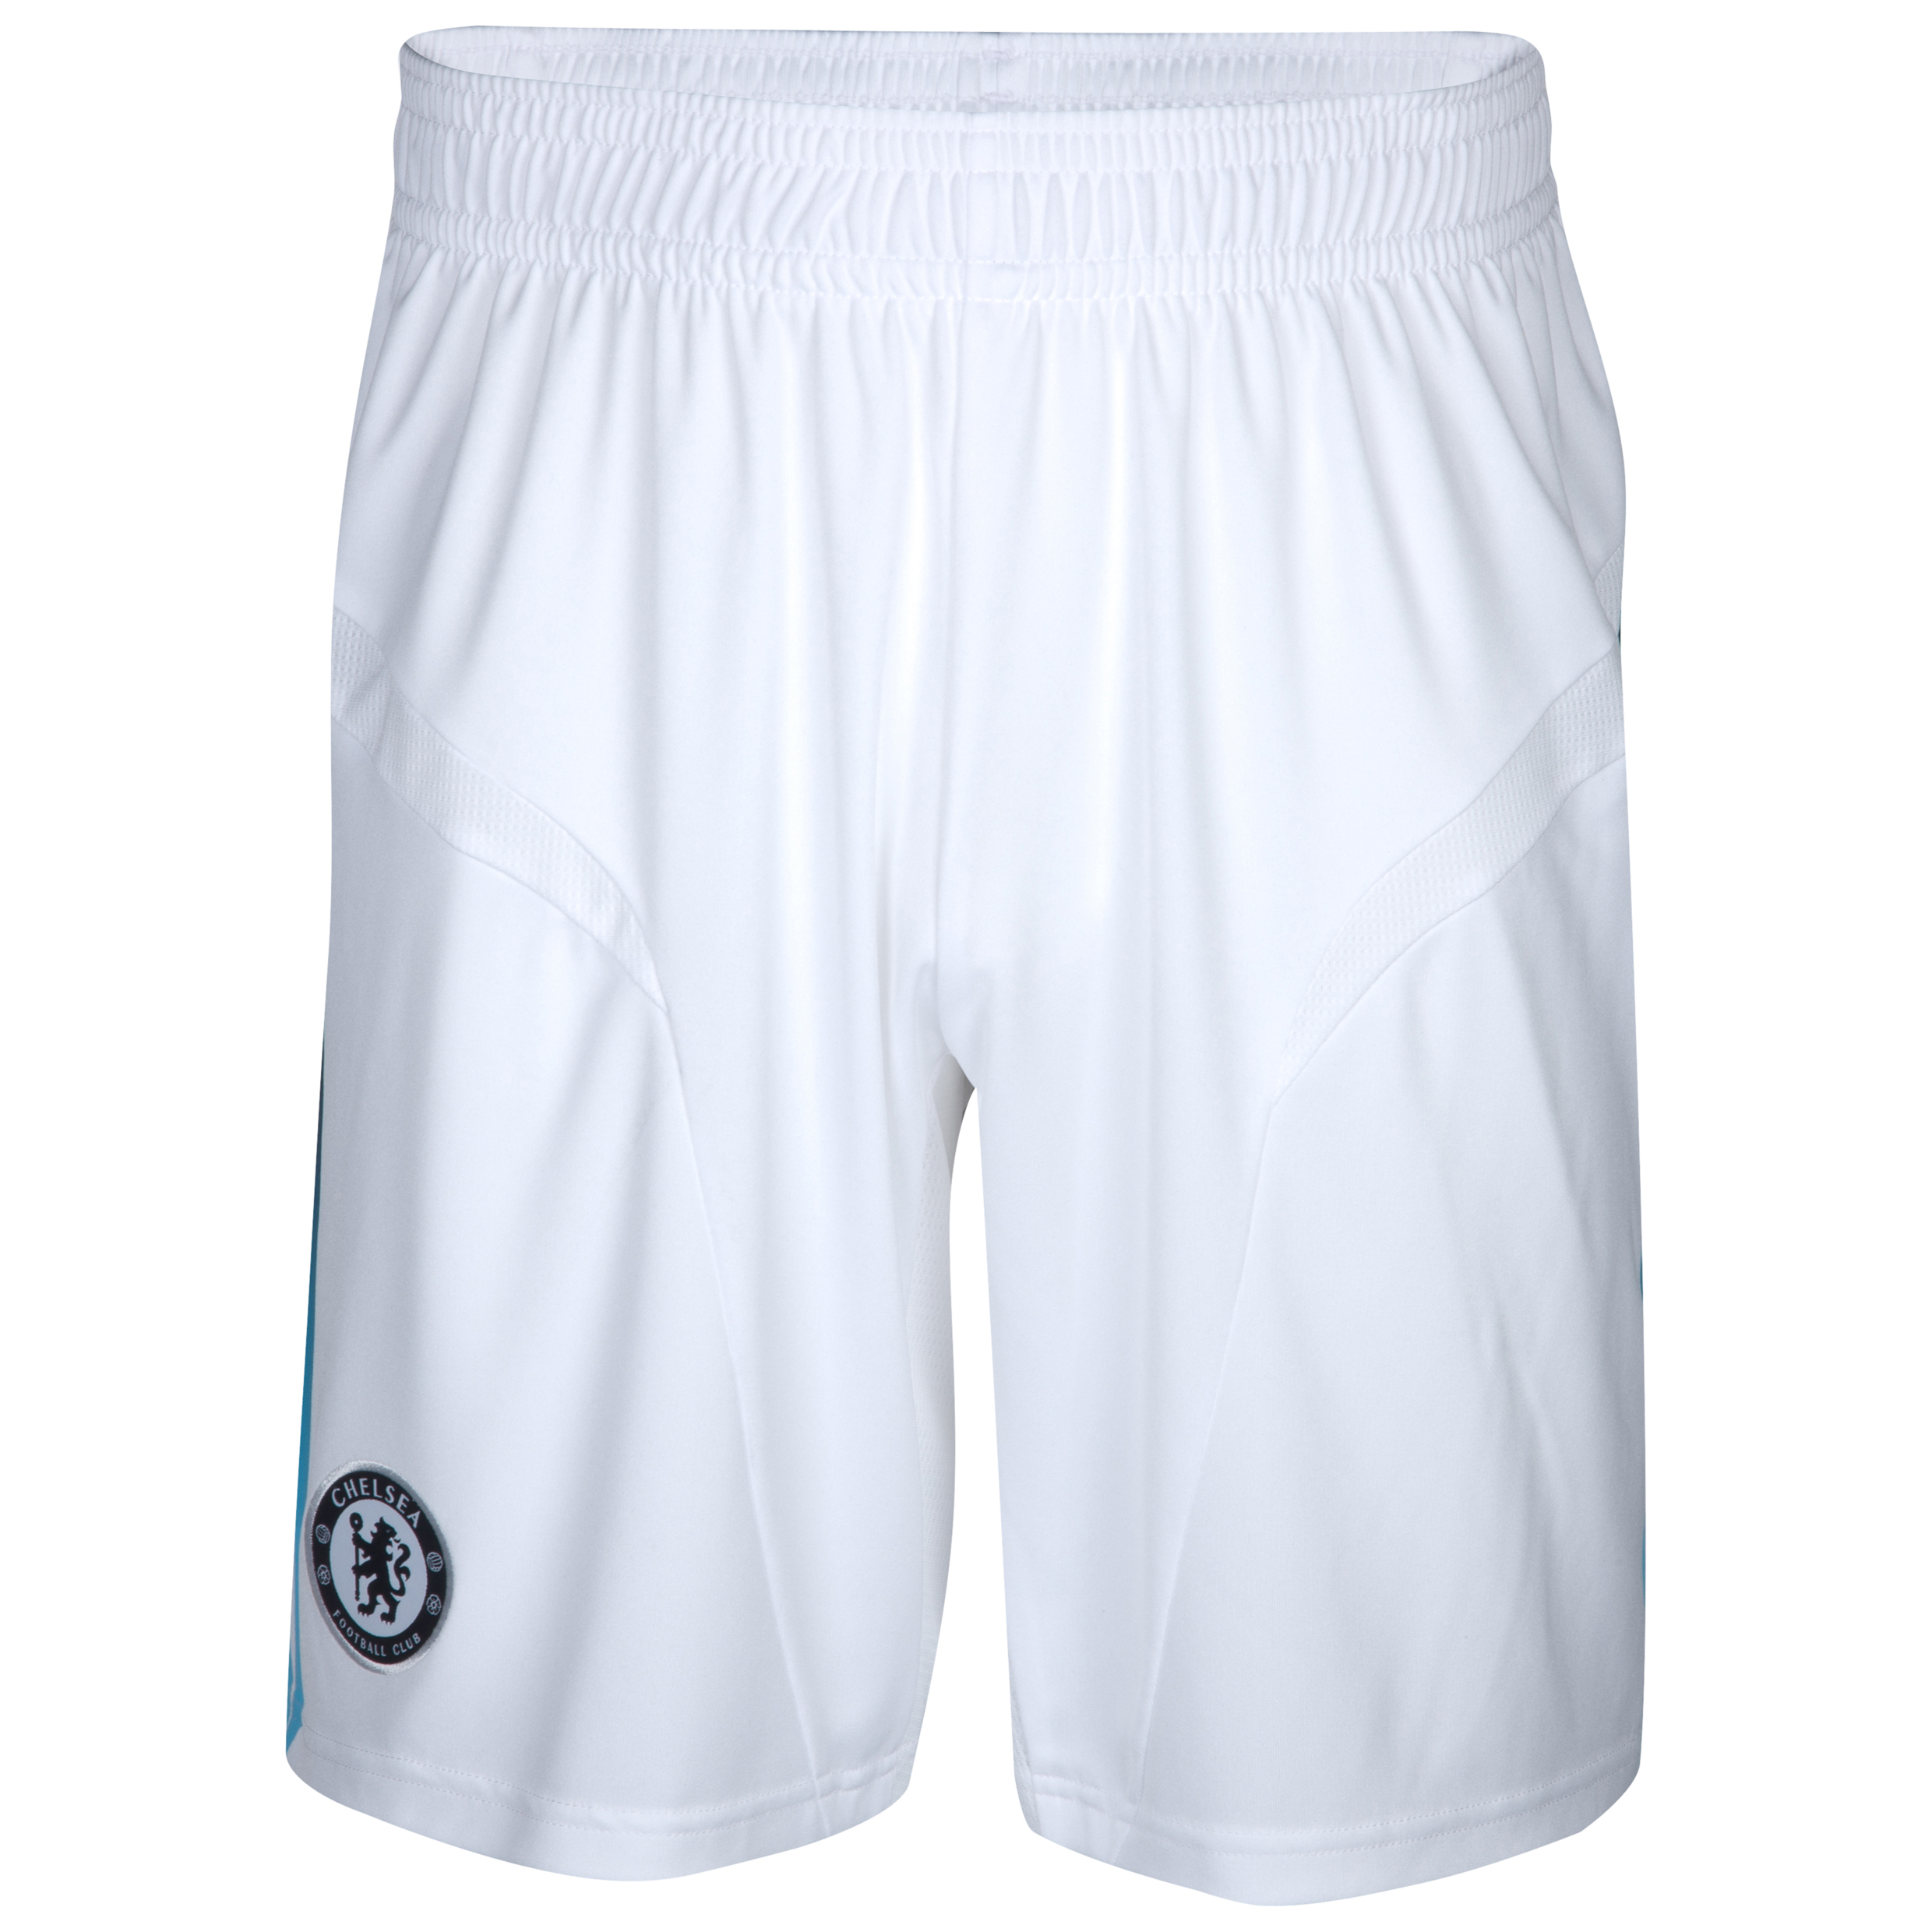 Chelsea Away Short 2012/13 - Youths